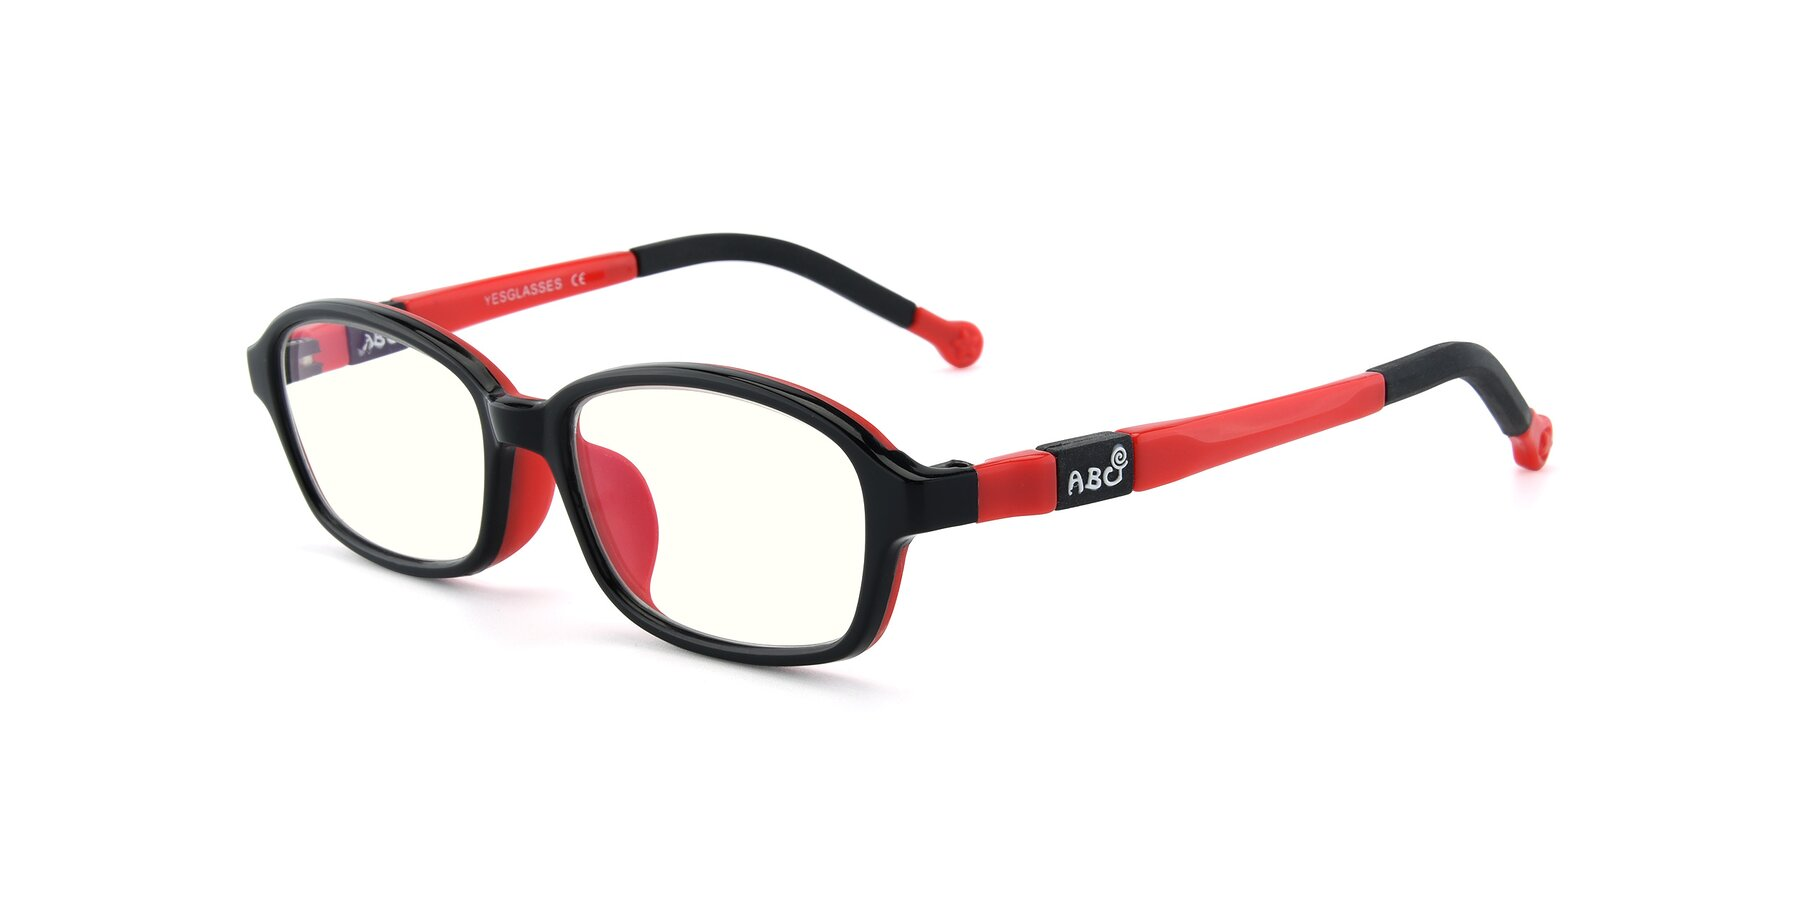 Angle of 533 in Black-Red with Clear Blue Light Blocking Lenses